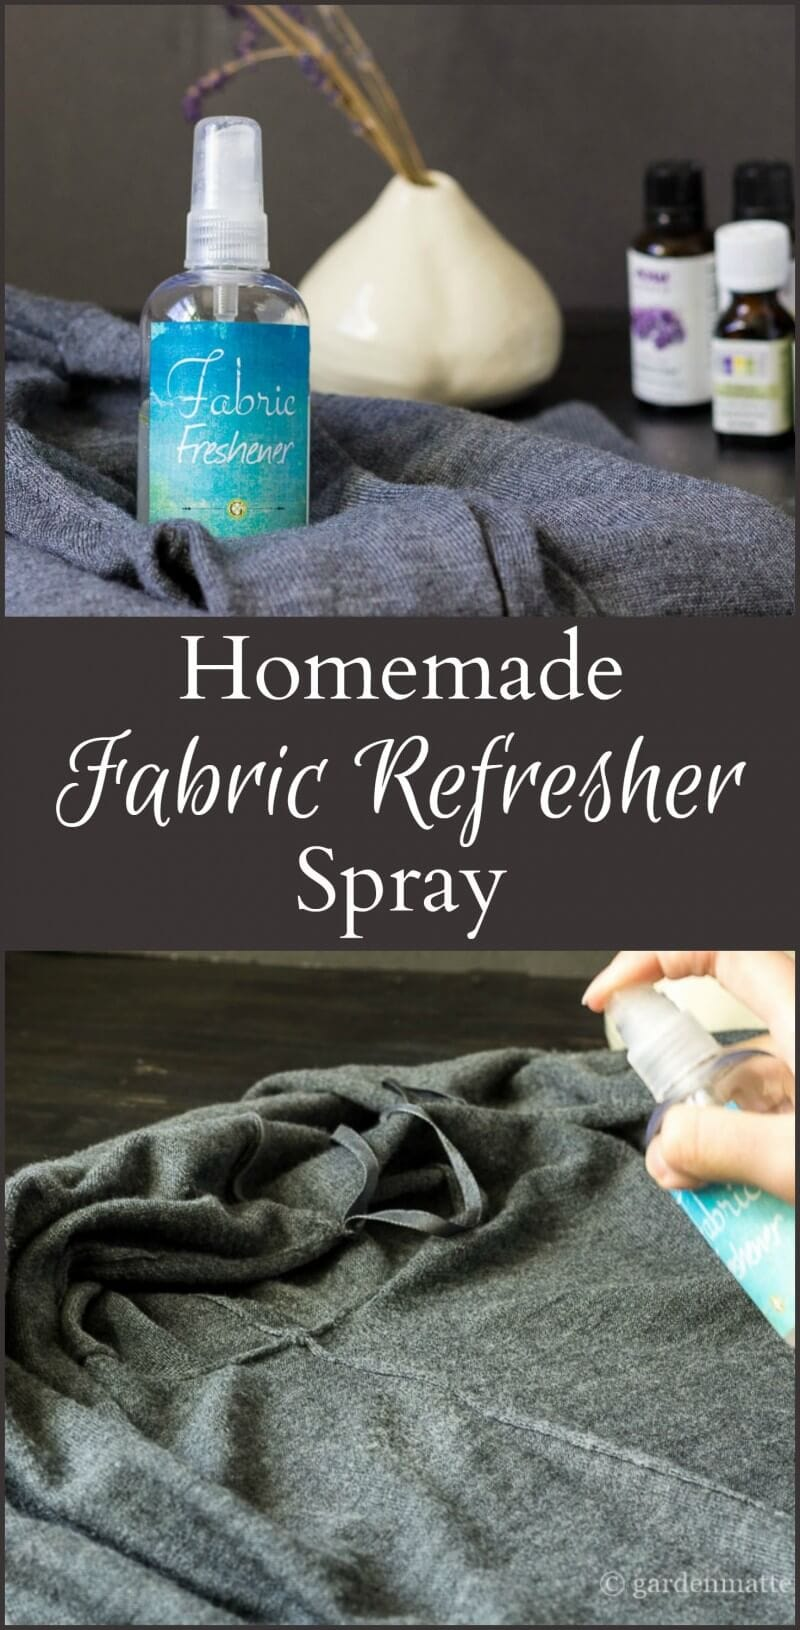 This homemade fabric refresher spray is a great way to lift unpleasant odors from sweaters and other fragile fabric instead of going to the dry cleaner.